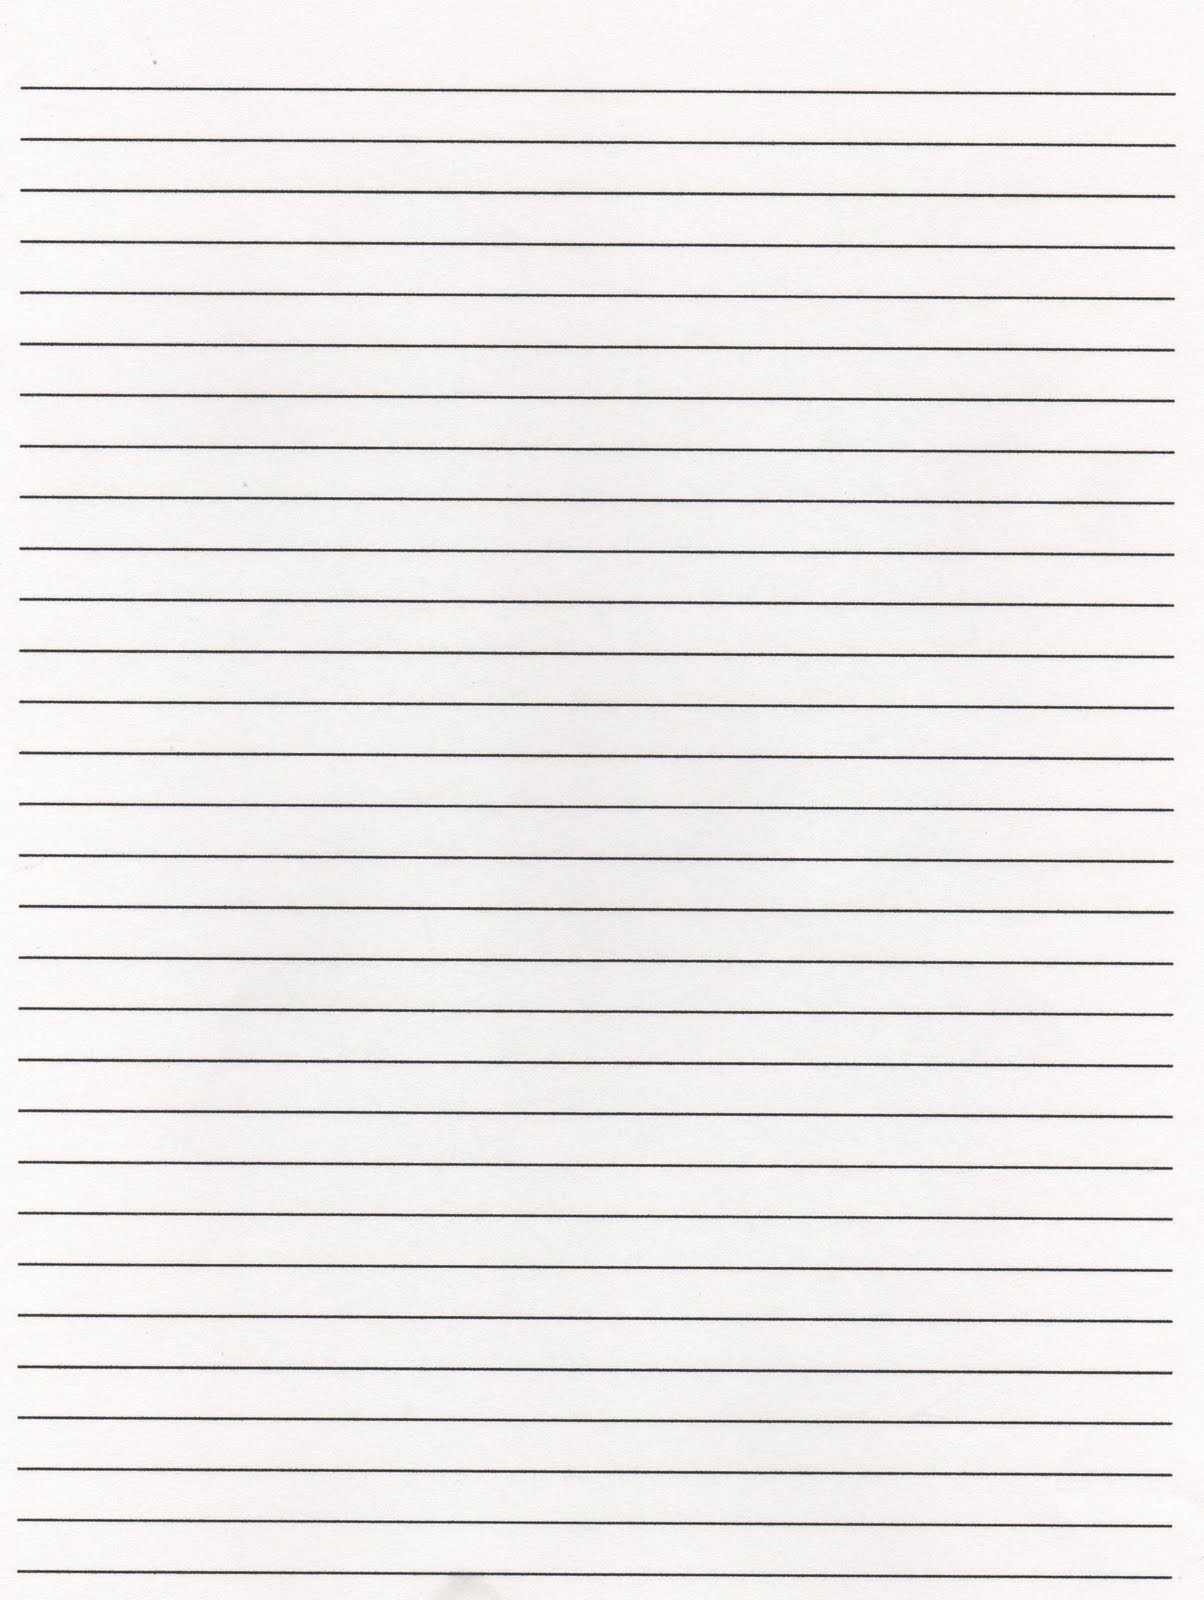 printable writing paper with lines and border